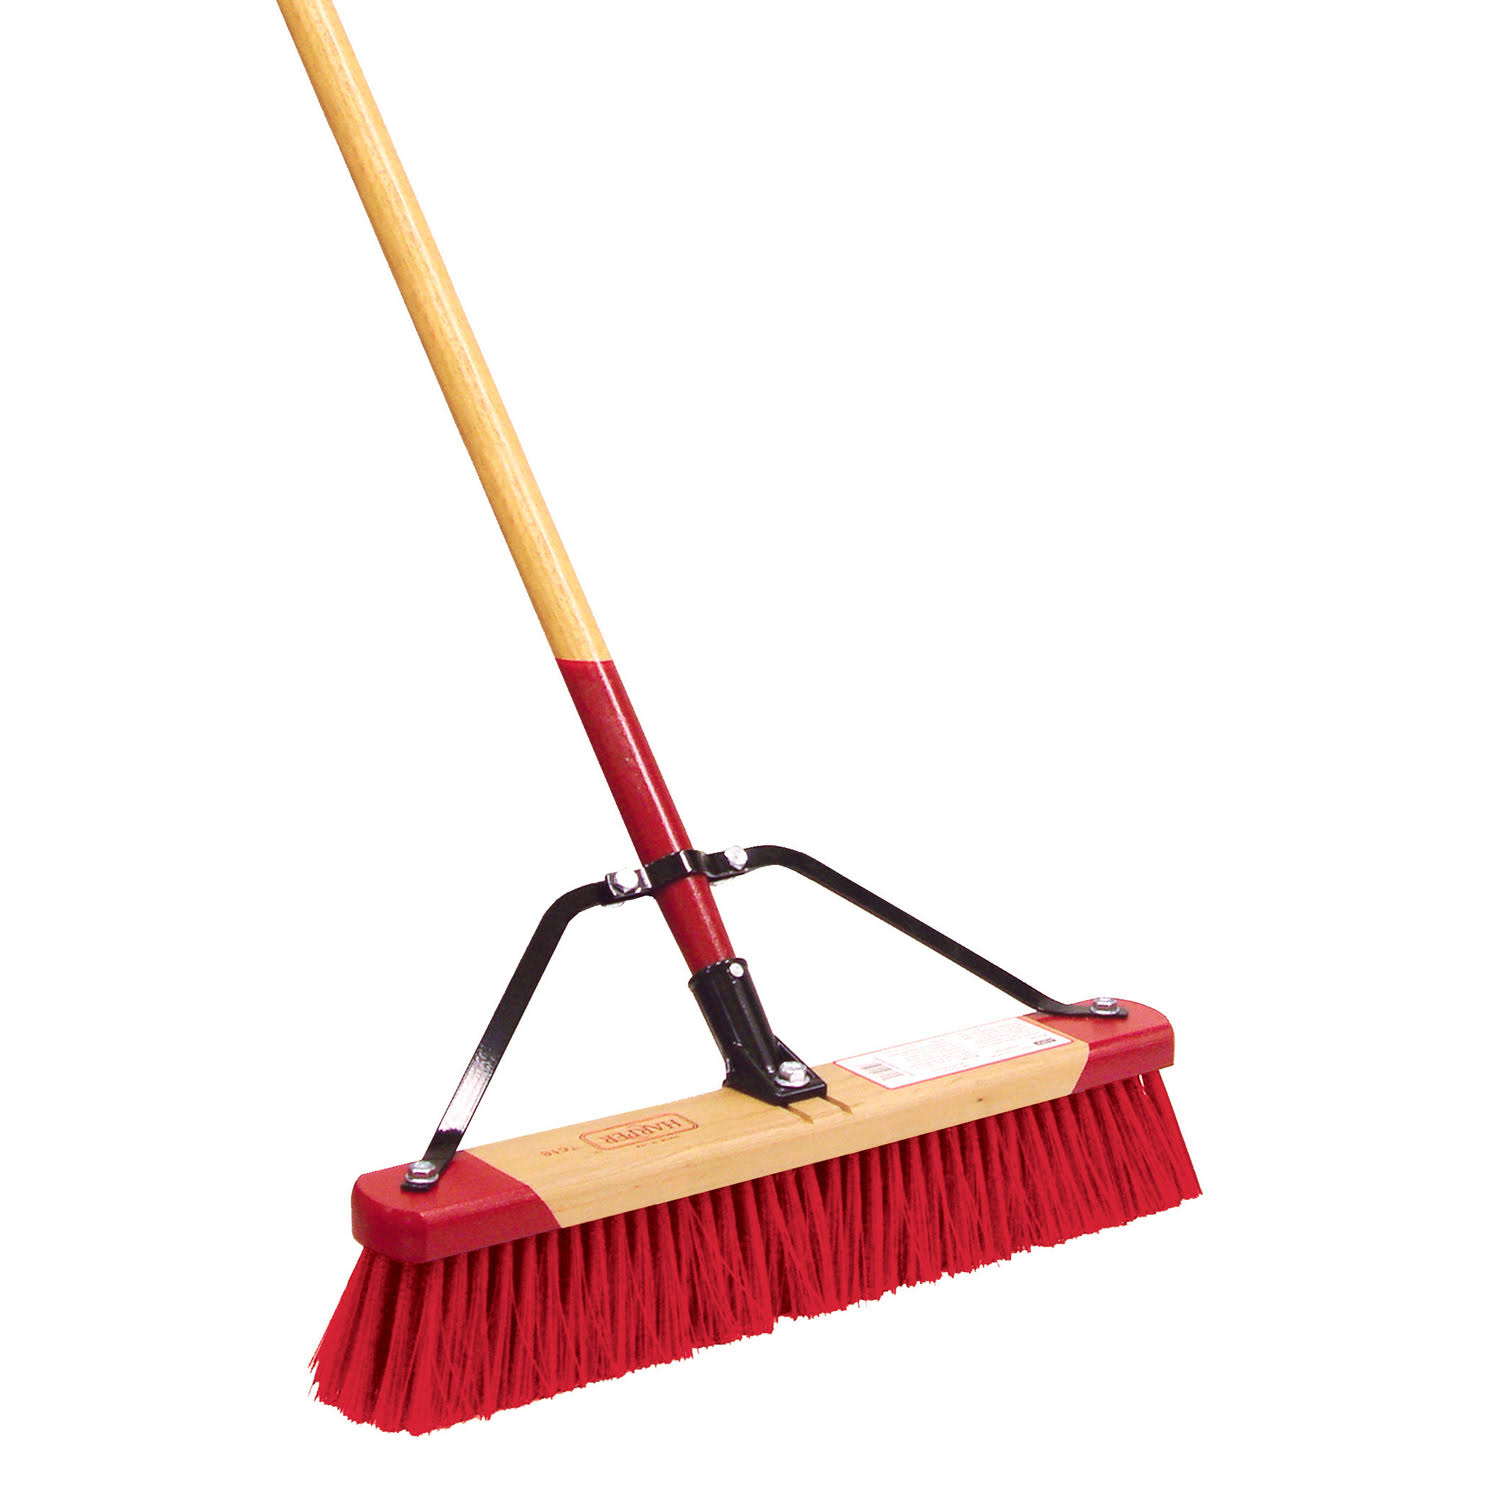 Harper 7318A Professional Red-End Assembled Push Broom - Medium Stiff Synthetic